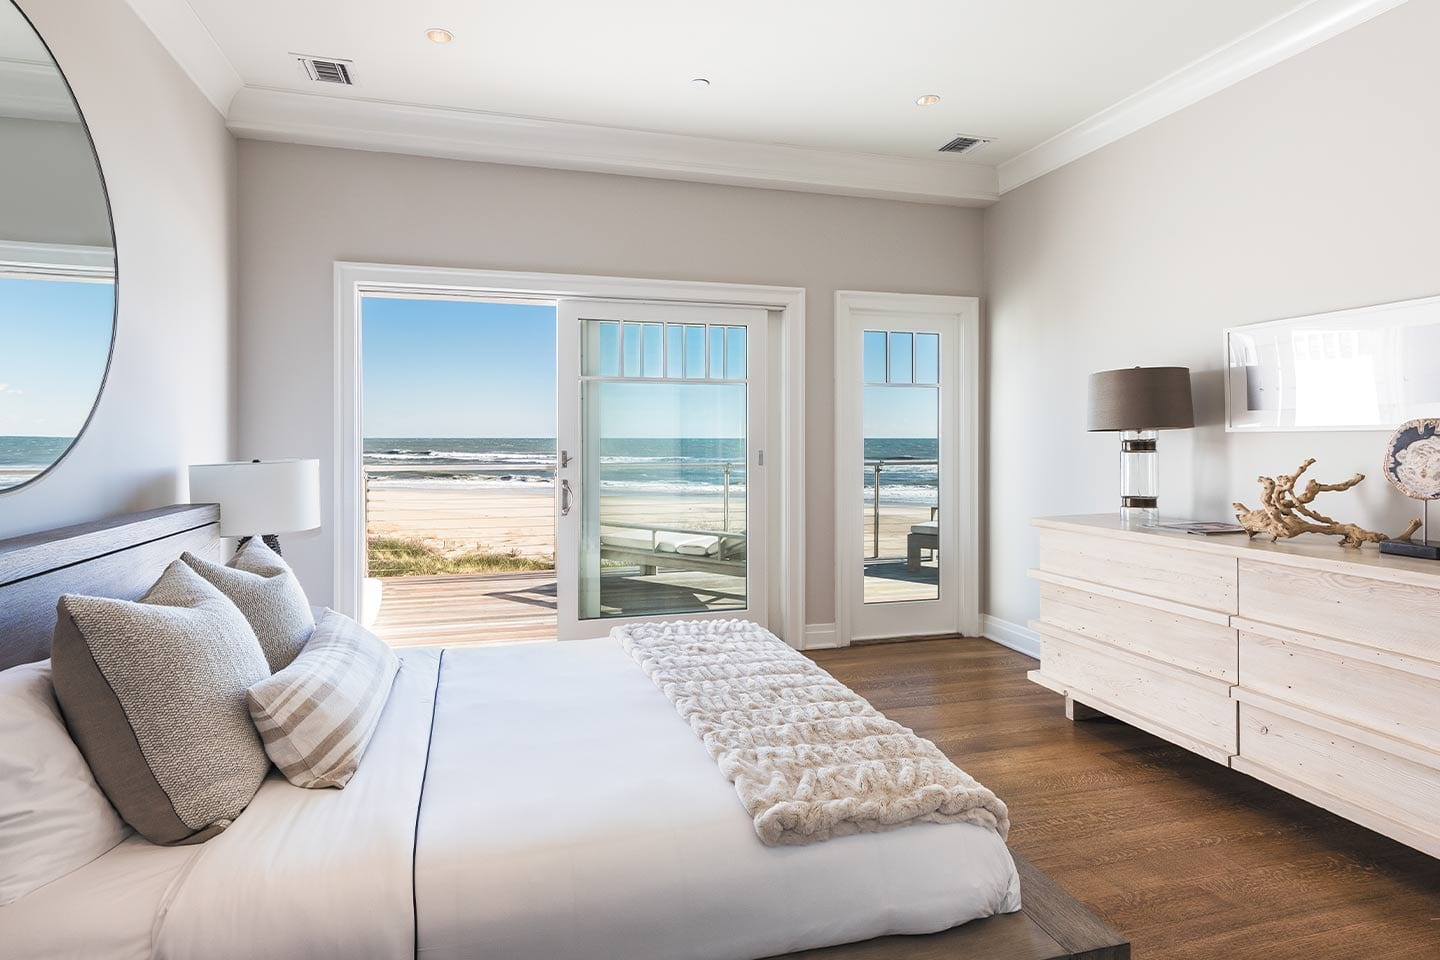 Bedroom with a ocean view